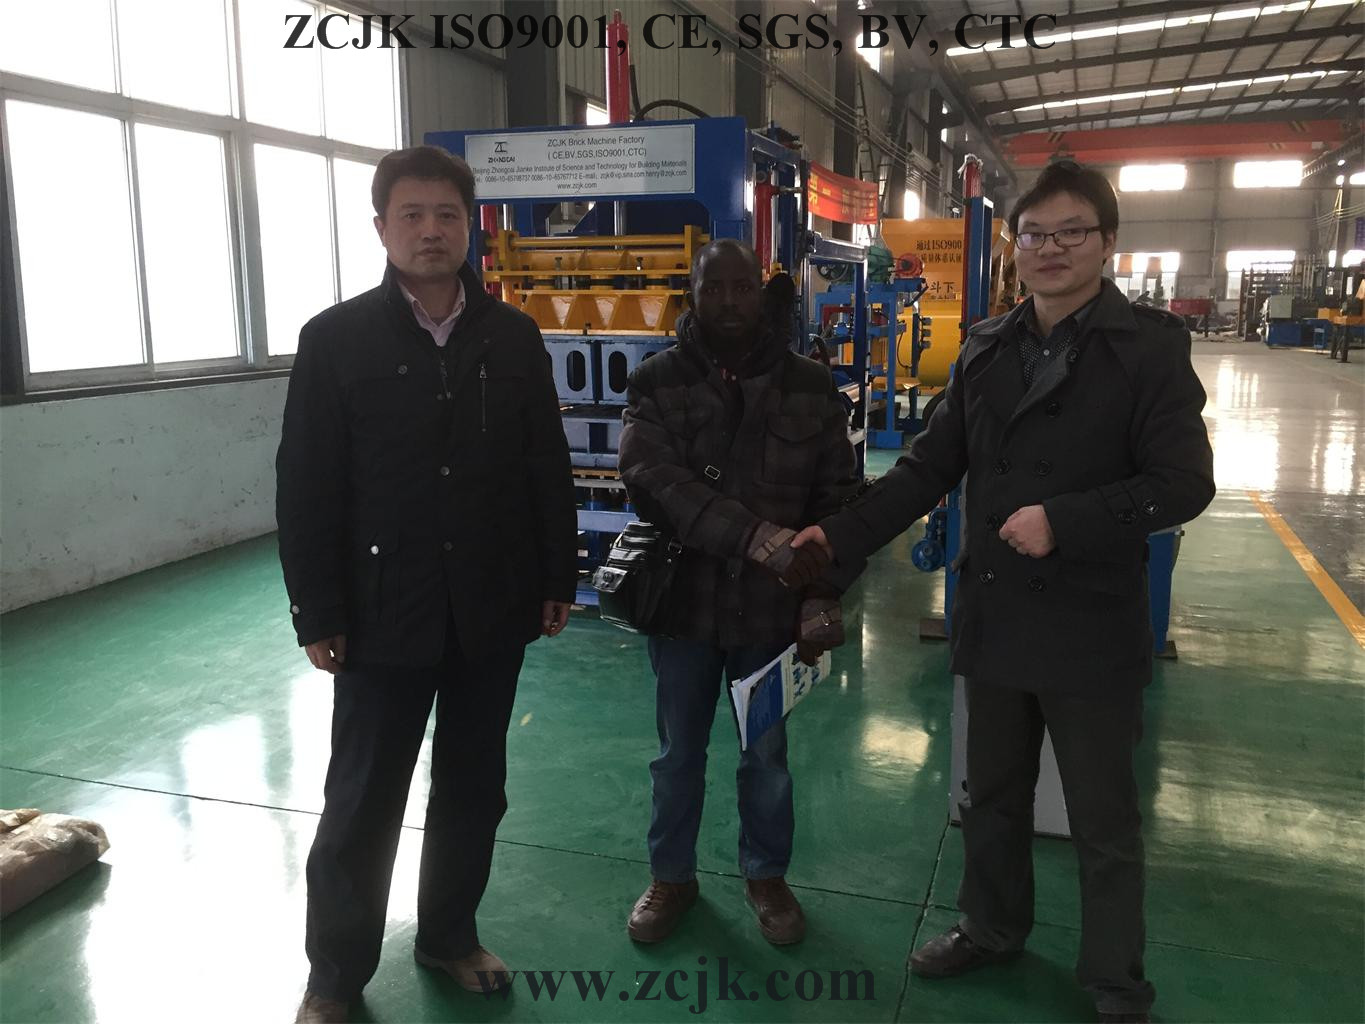 ZCJK Brick Machine Uganda Customer 20160115 (9)